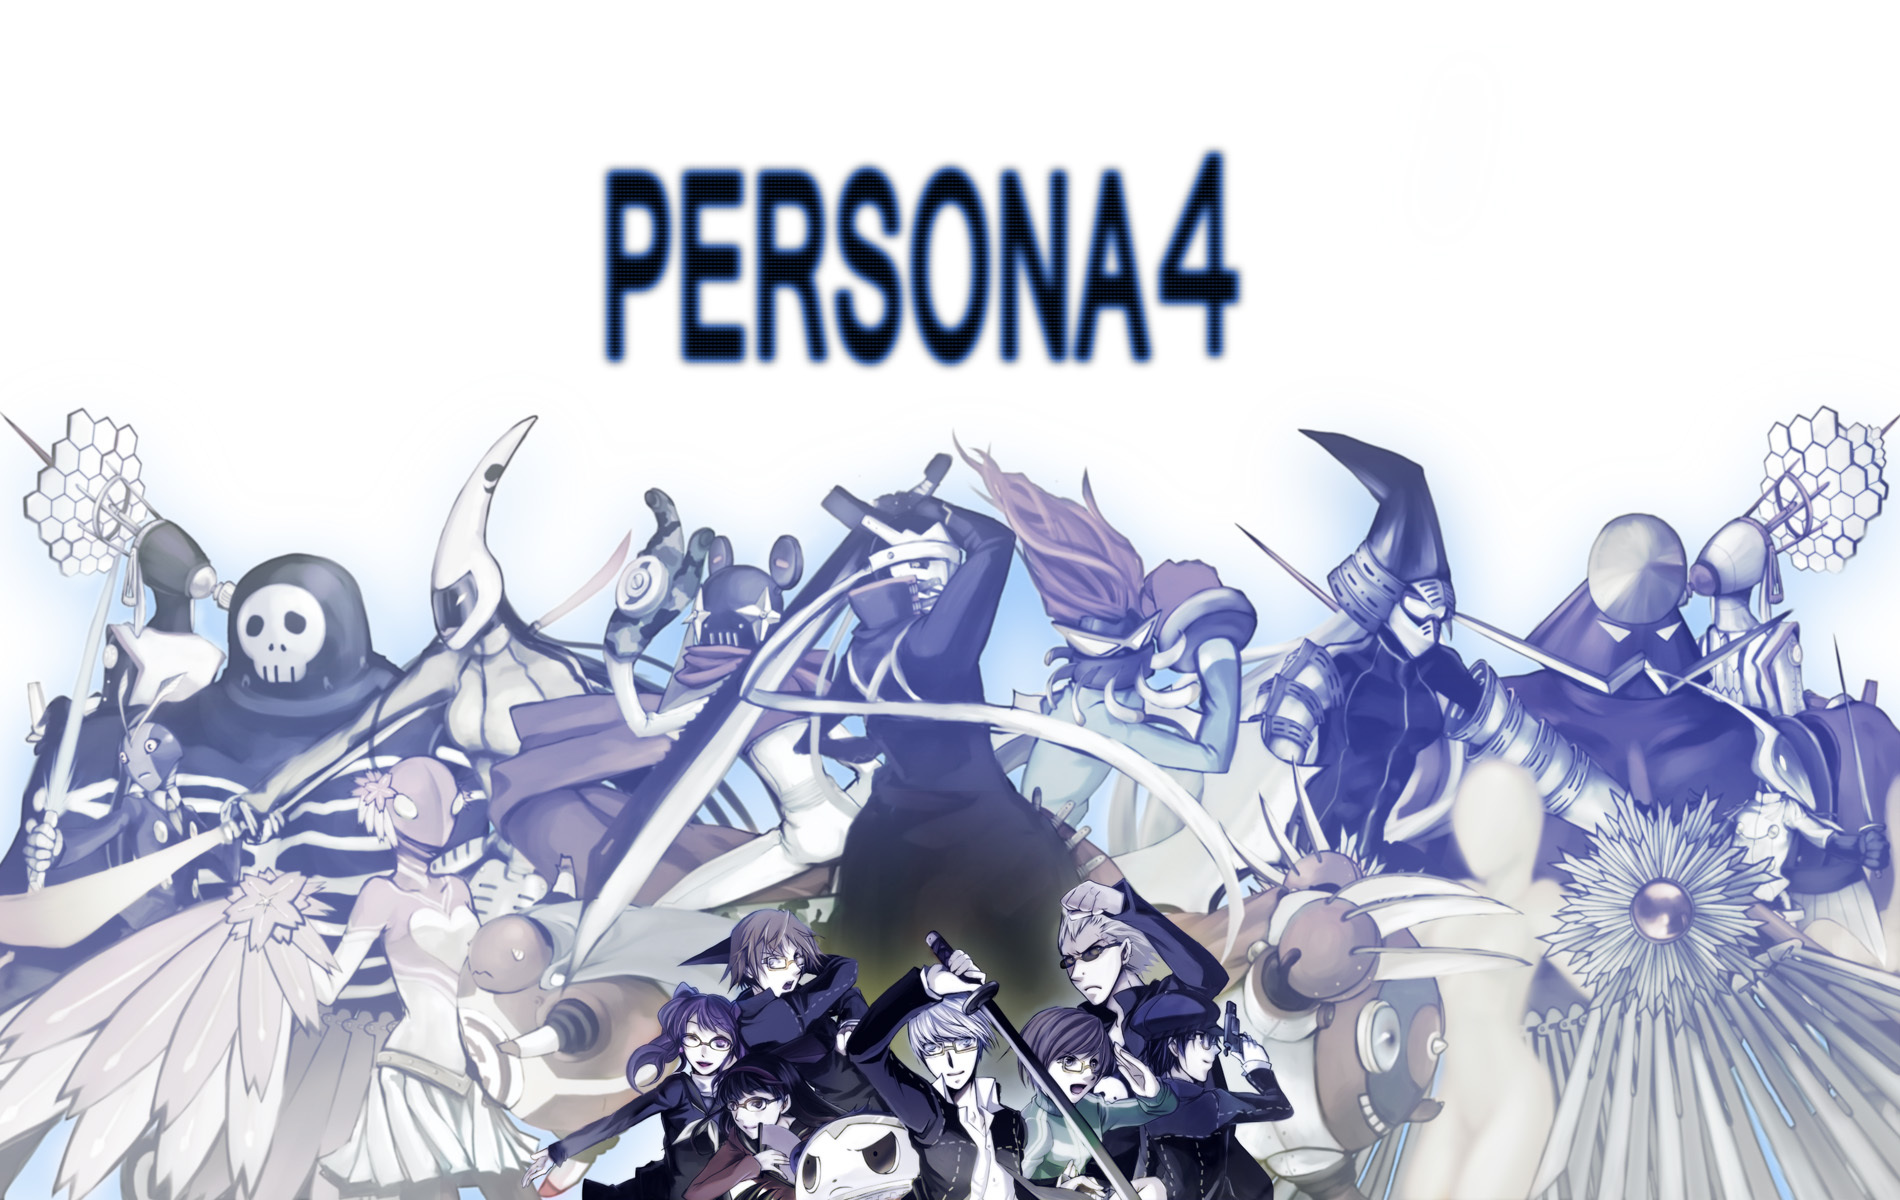 Persona series persona 4 HD Wallpaper